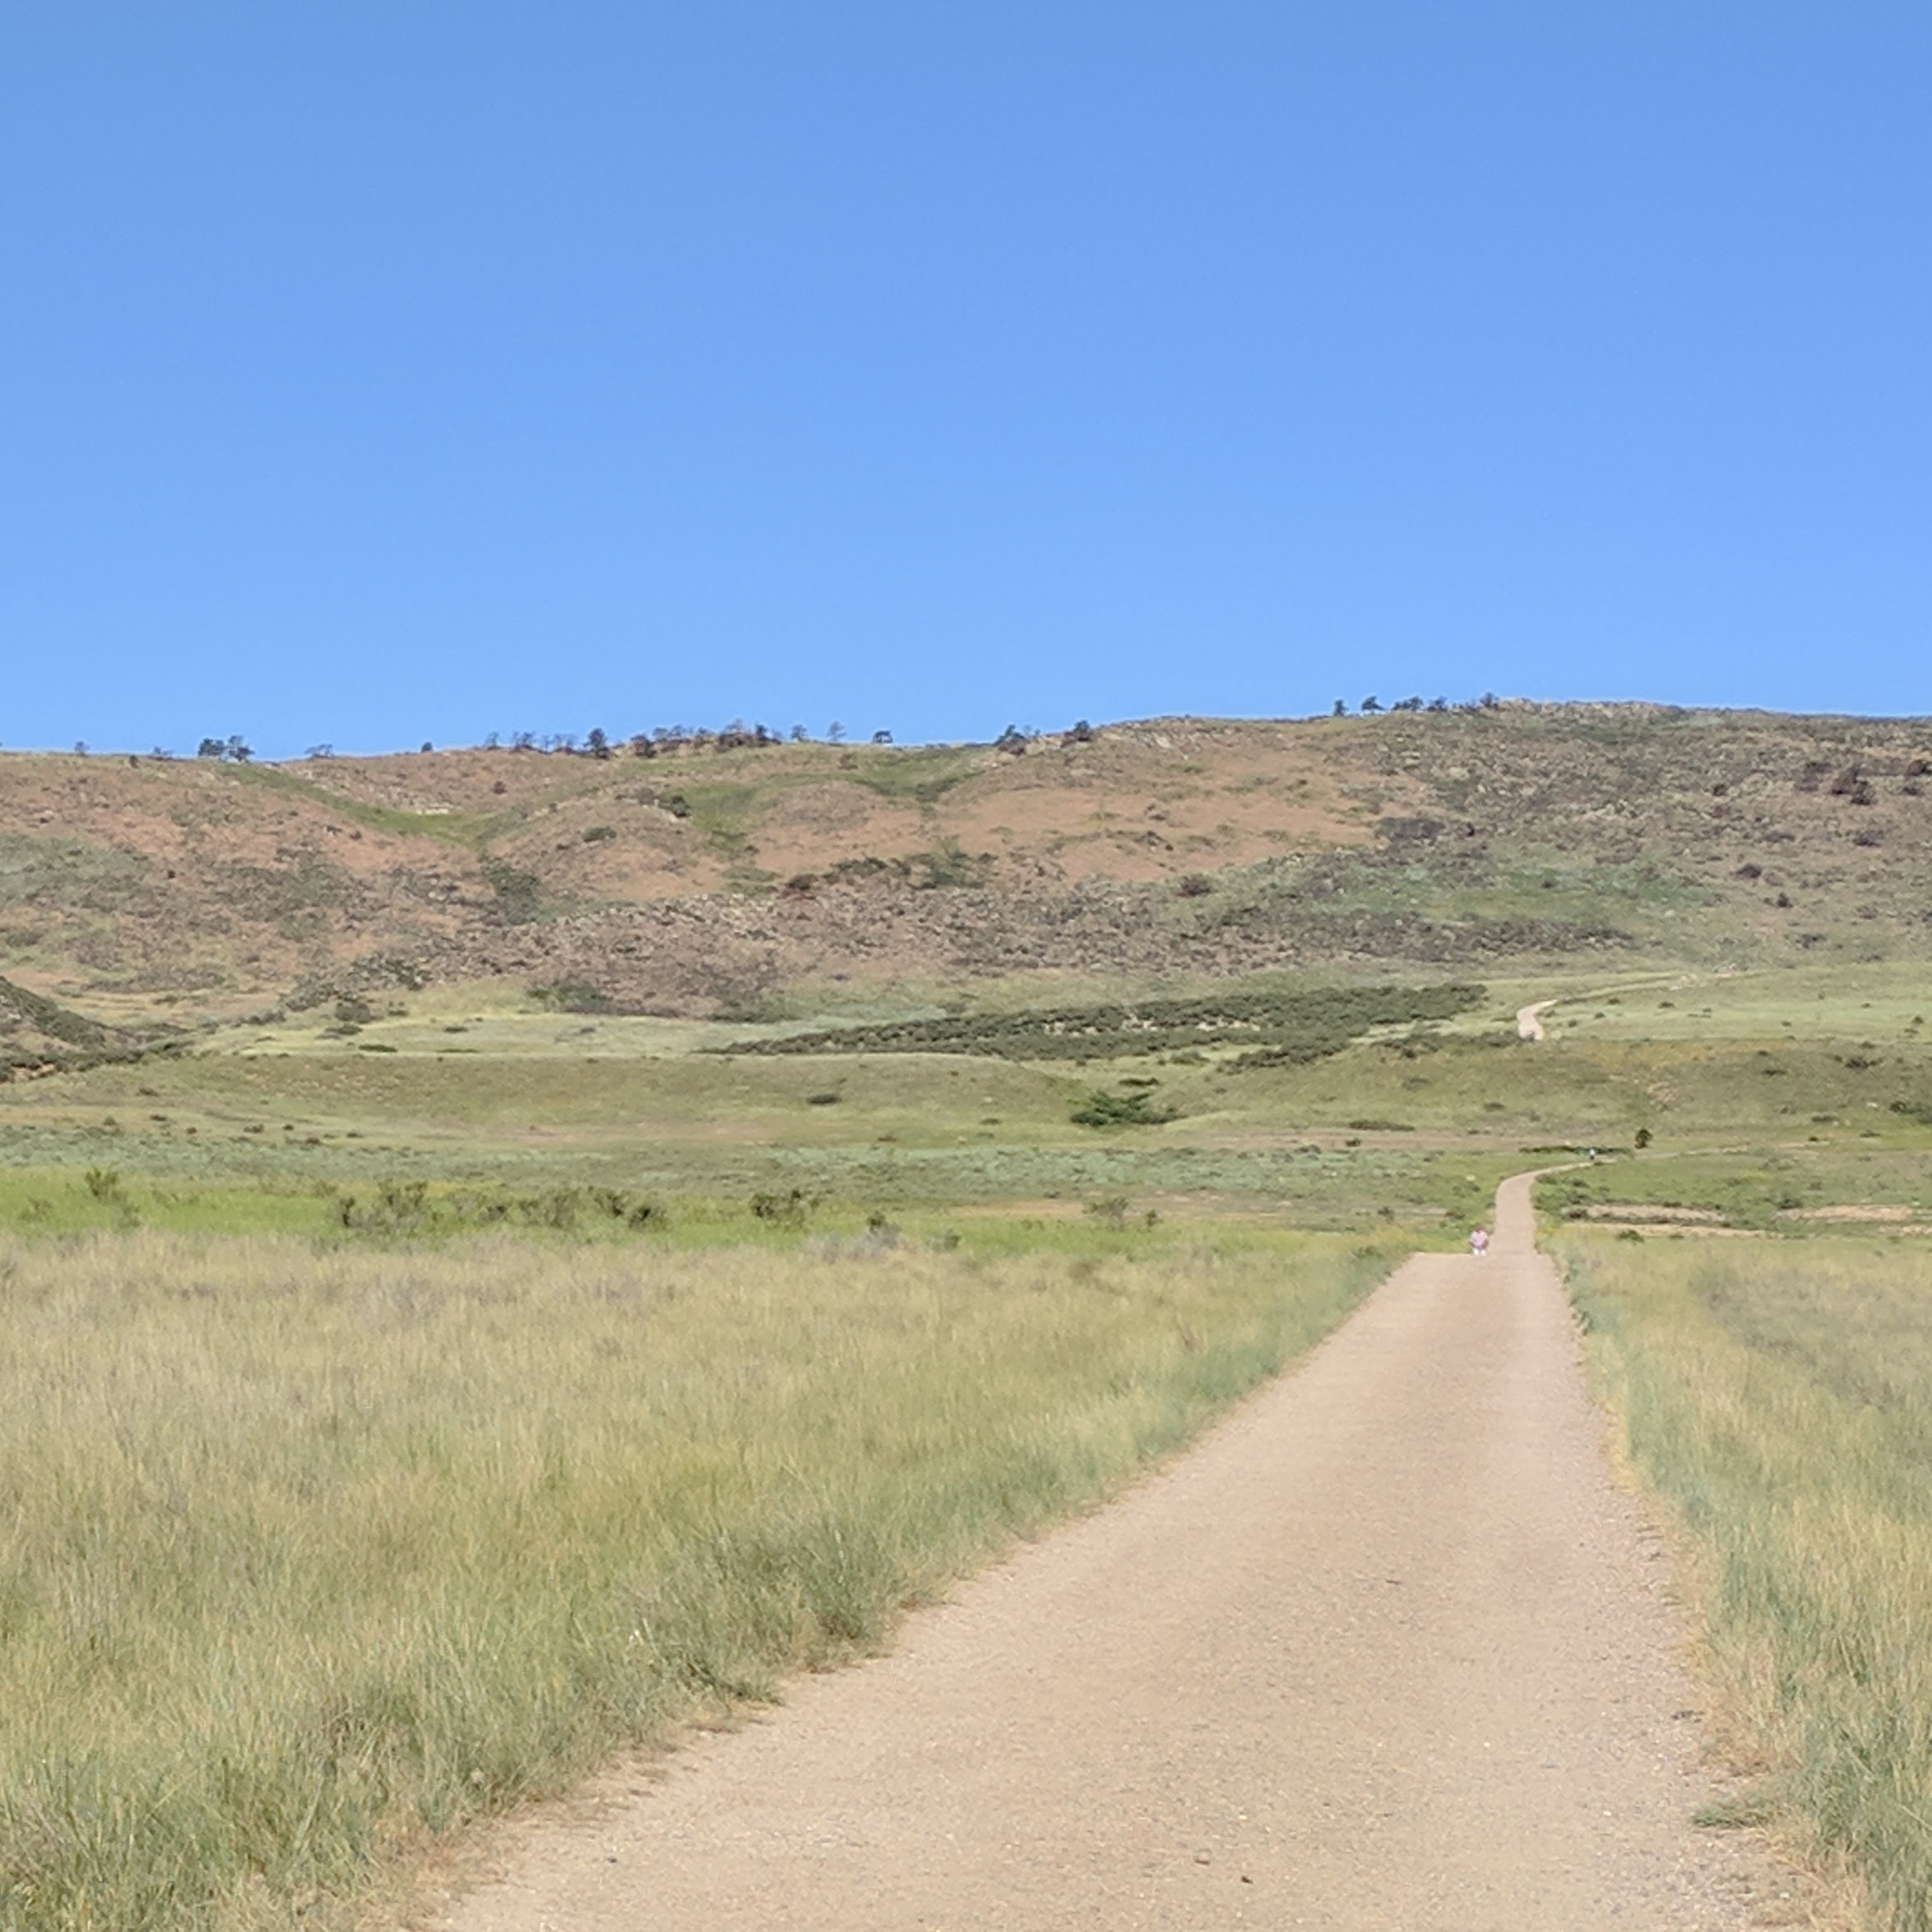 Walk less than five minutes along this path from the parking lot, then listen for the chirps and yips of the prairie dogs.